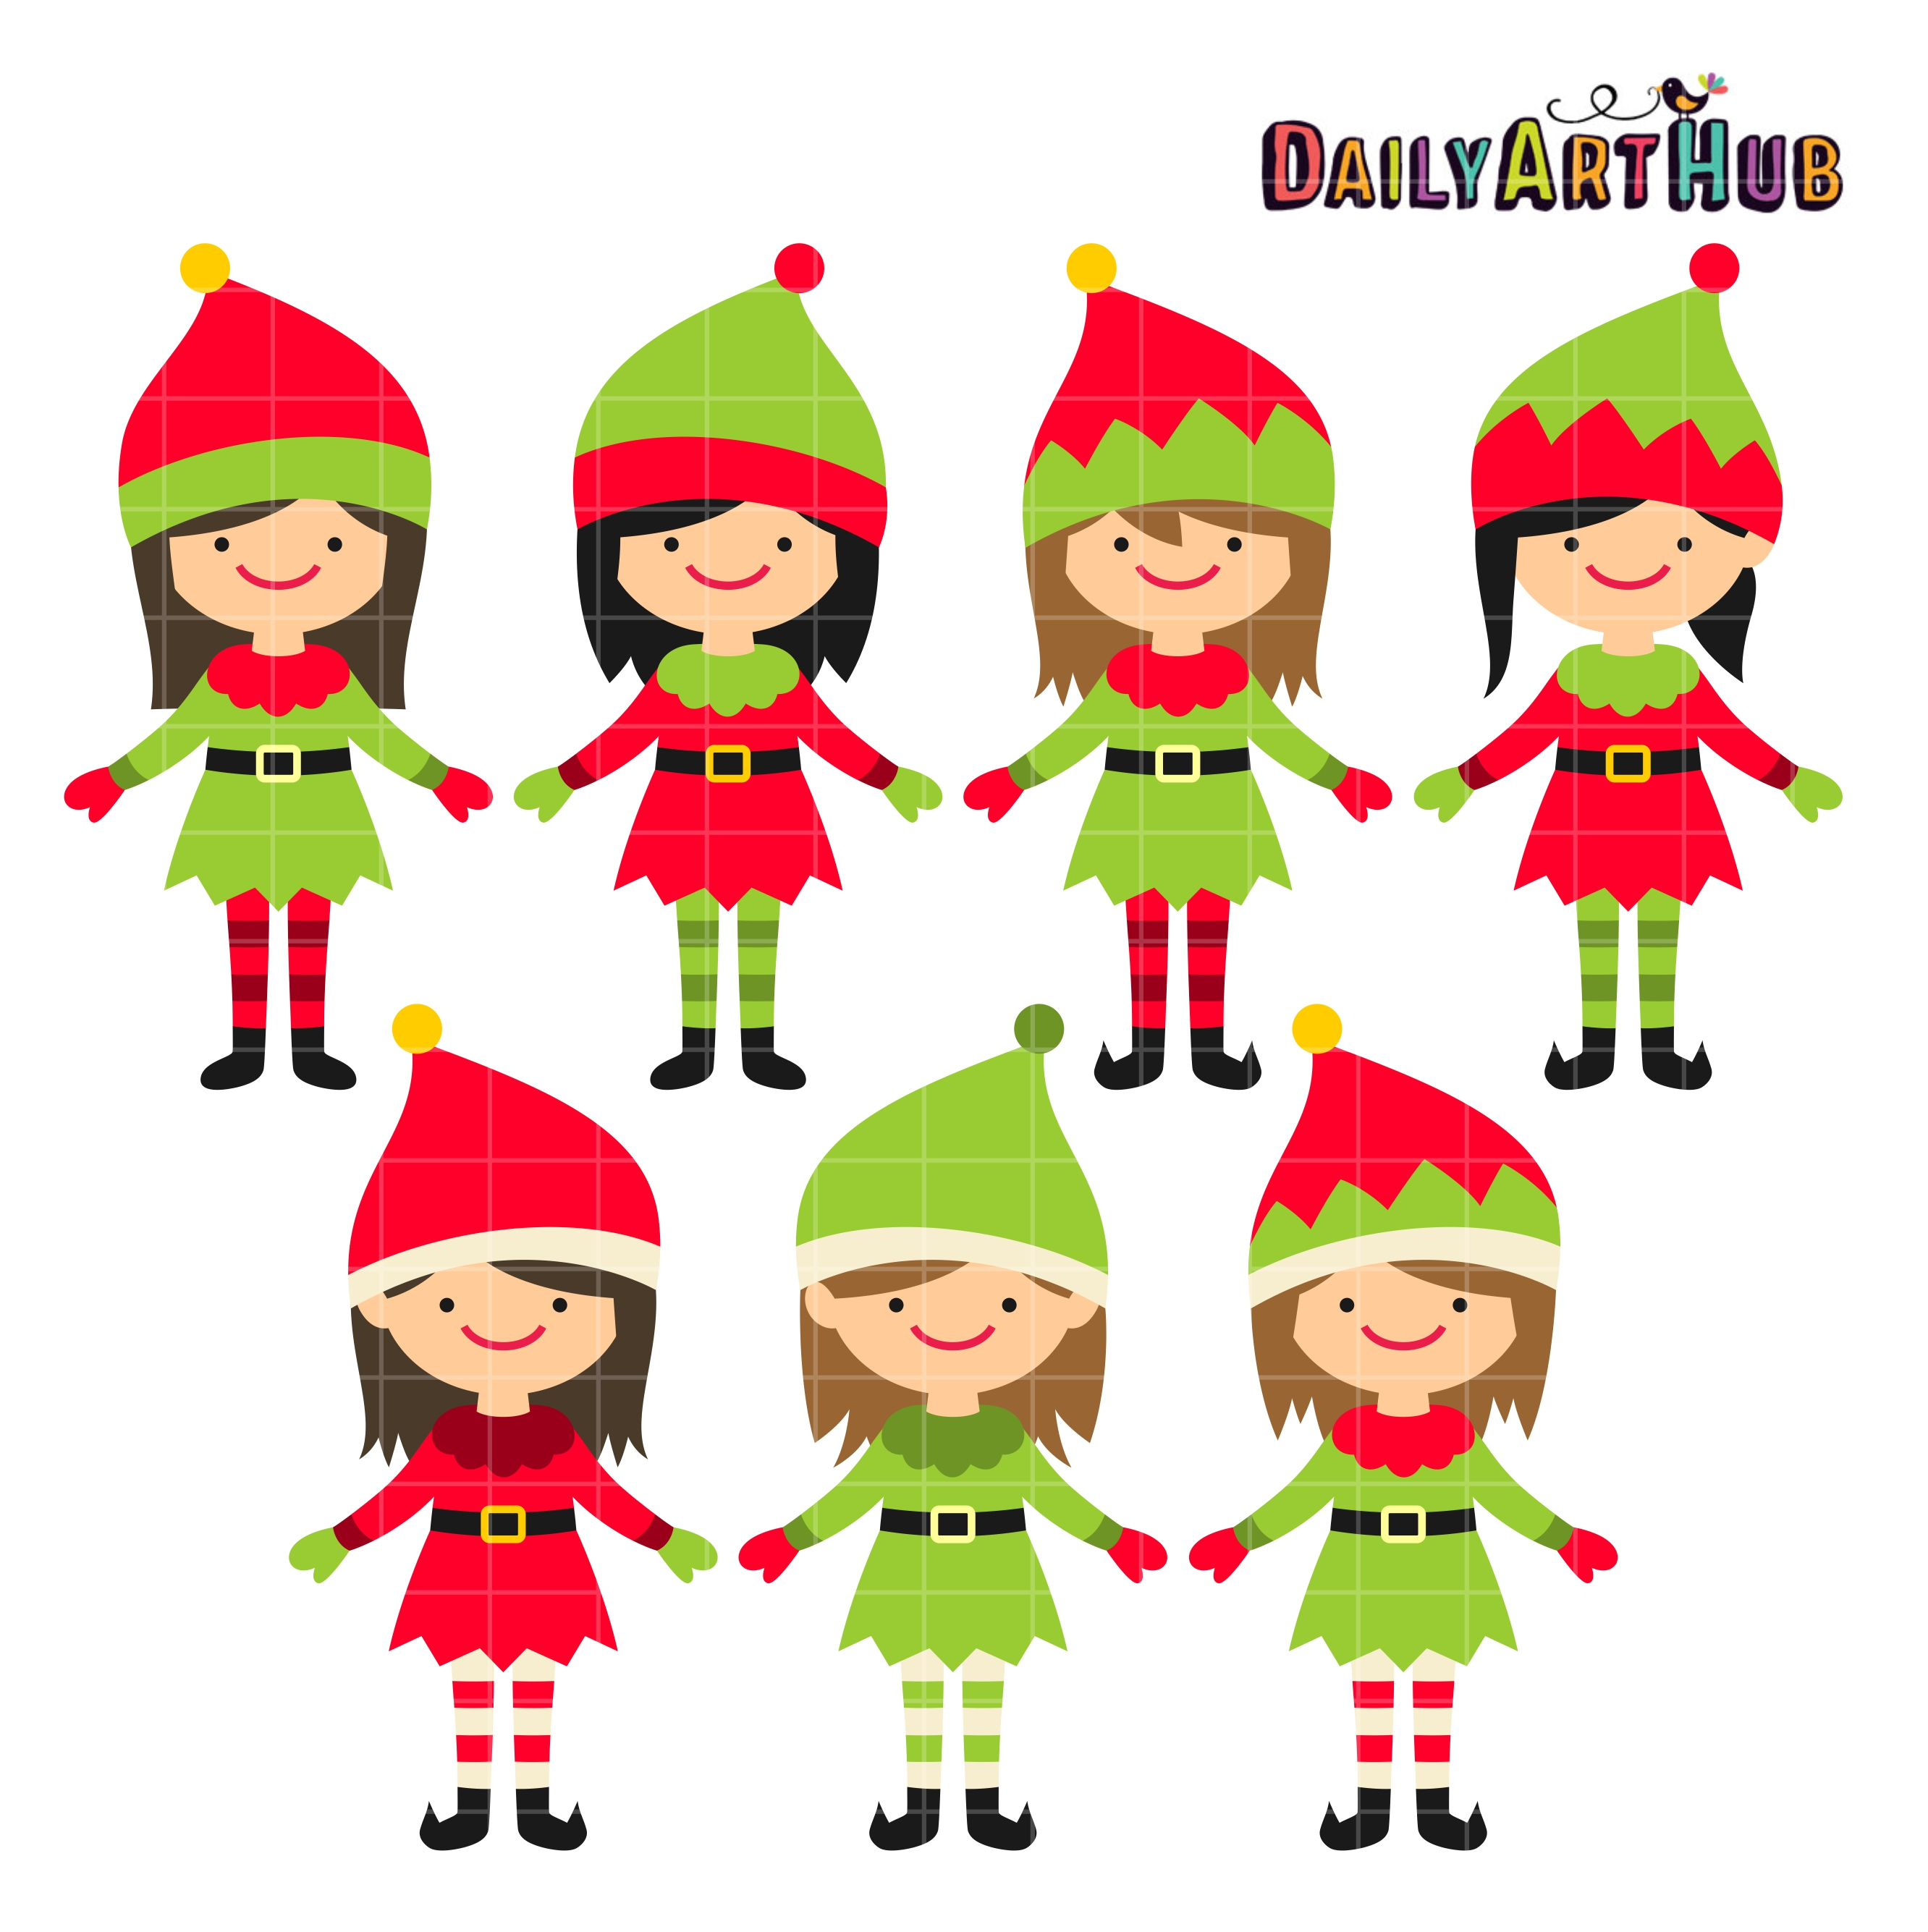 Christmas Cute Elves Clip Art Set Daily Art Hub Free